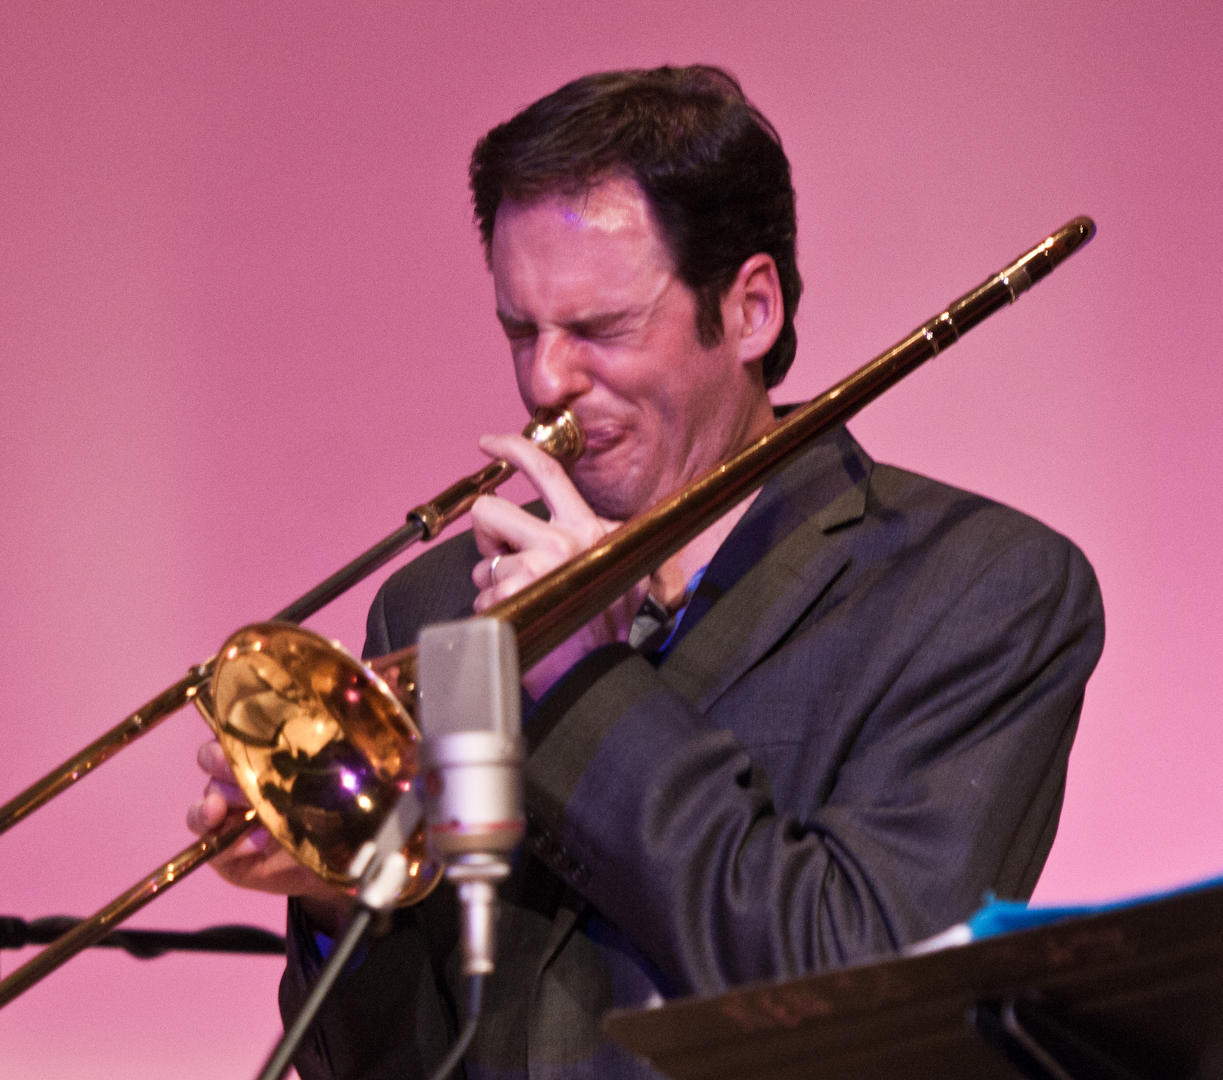 Joel Yennior with the Either/Orchestra at the New School for Jazz